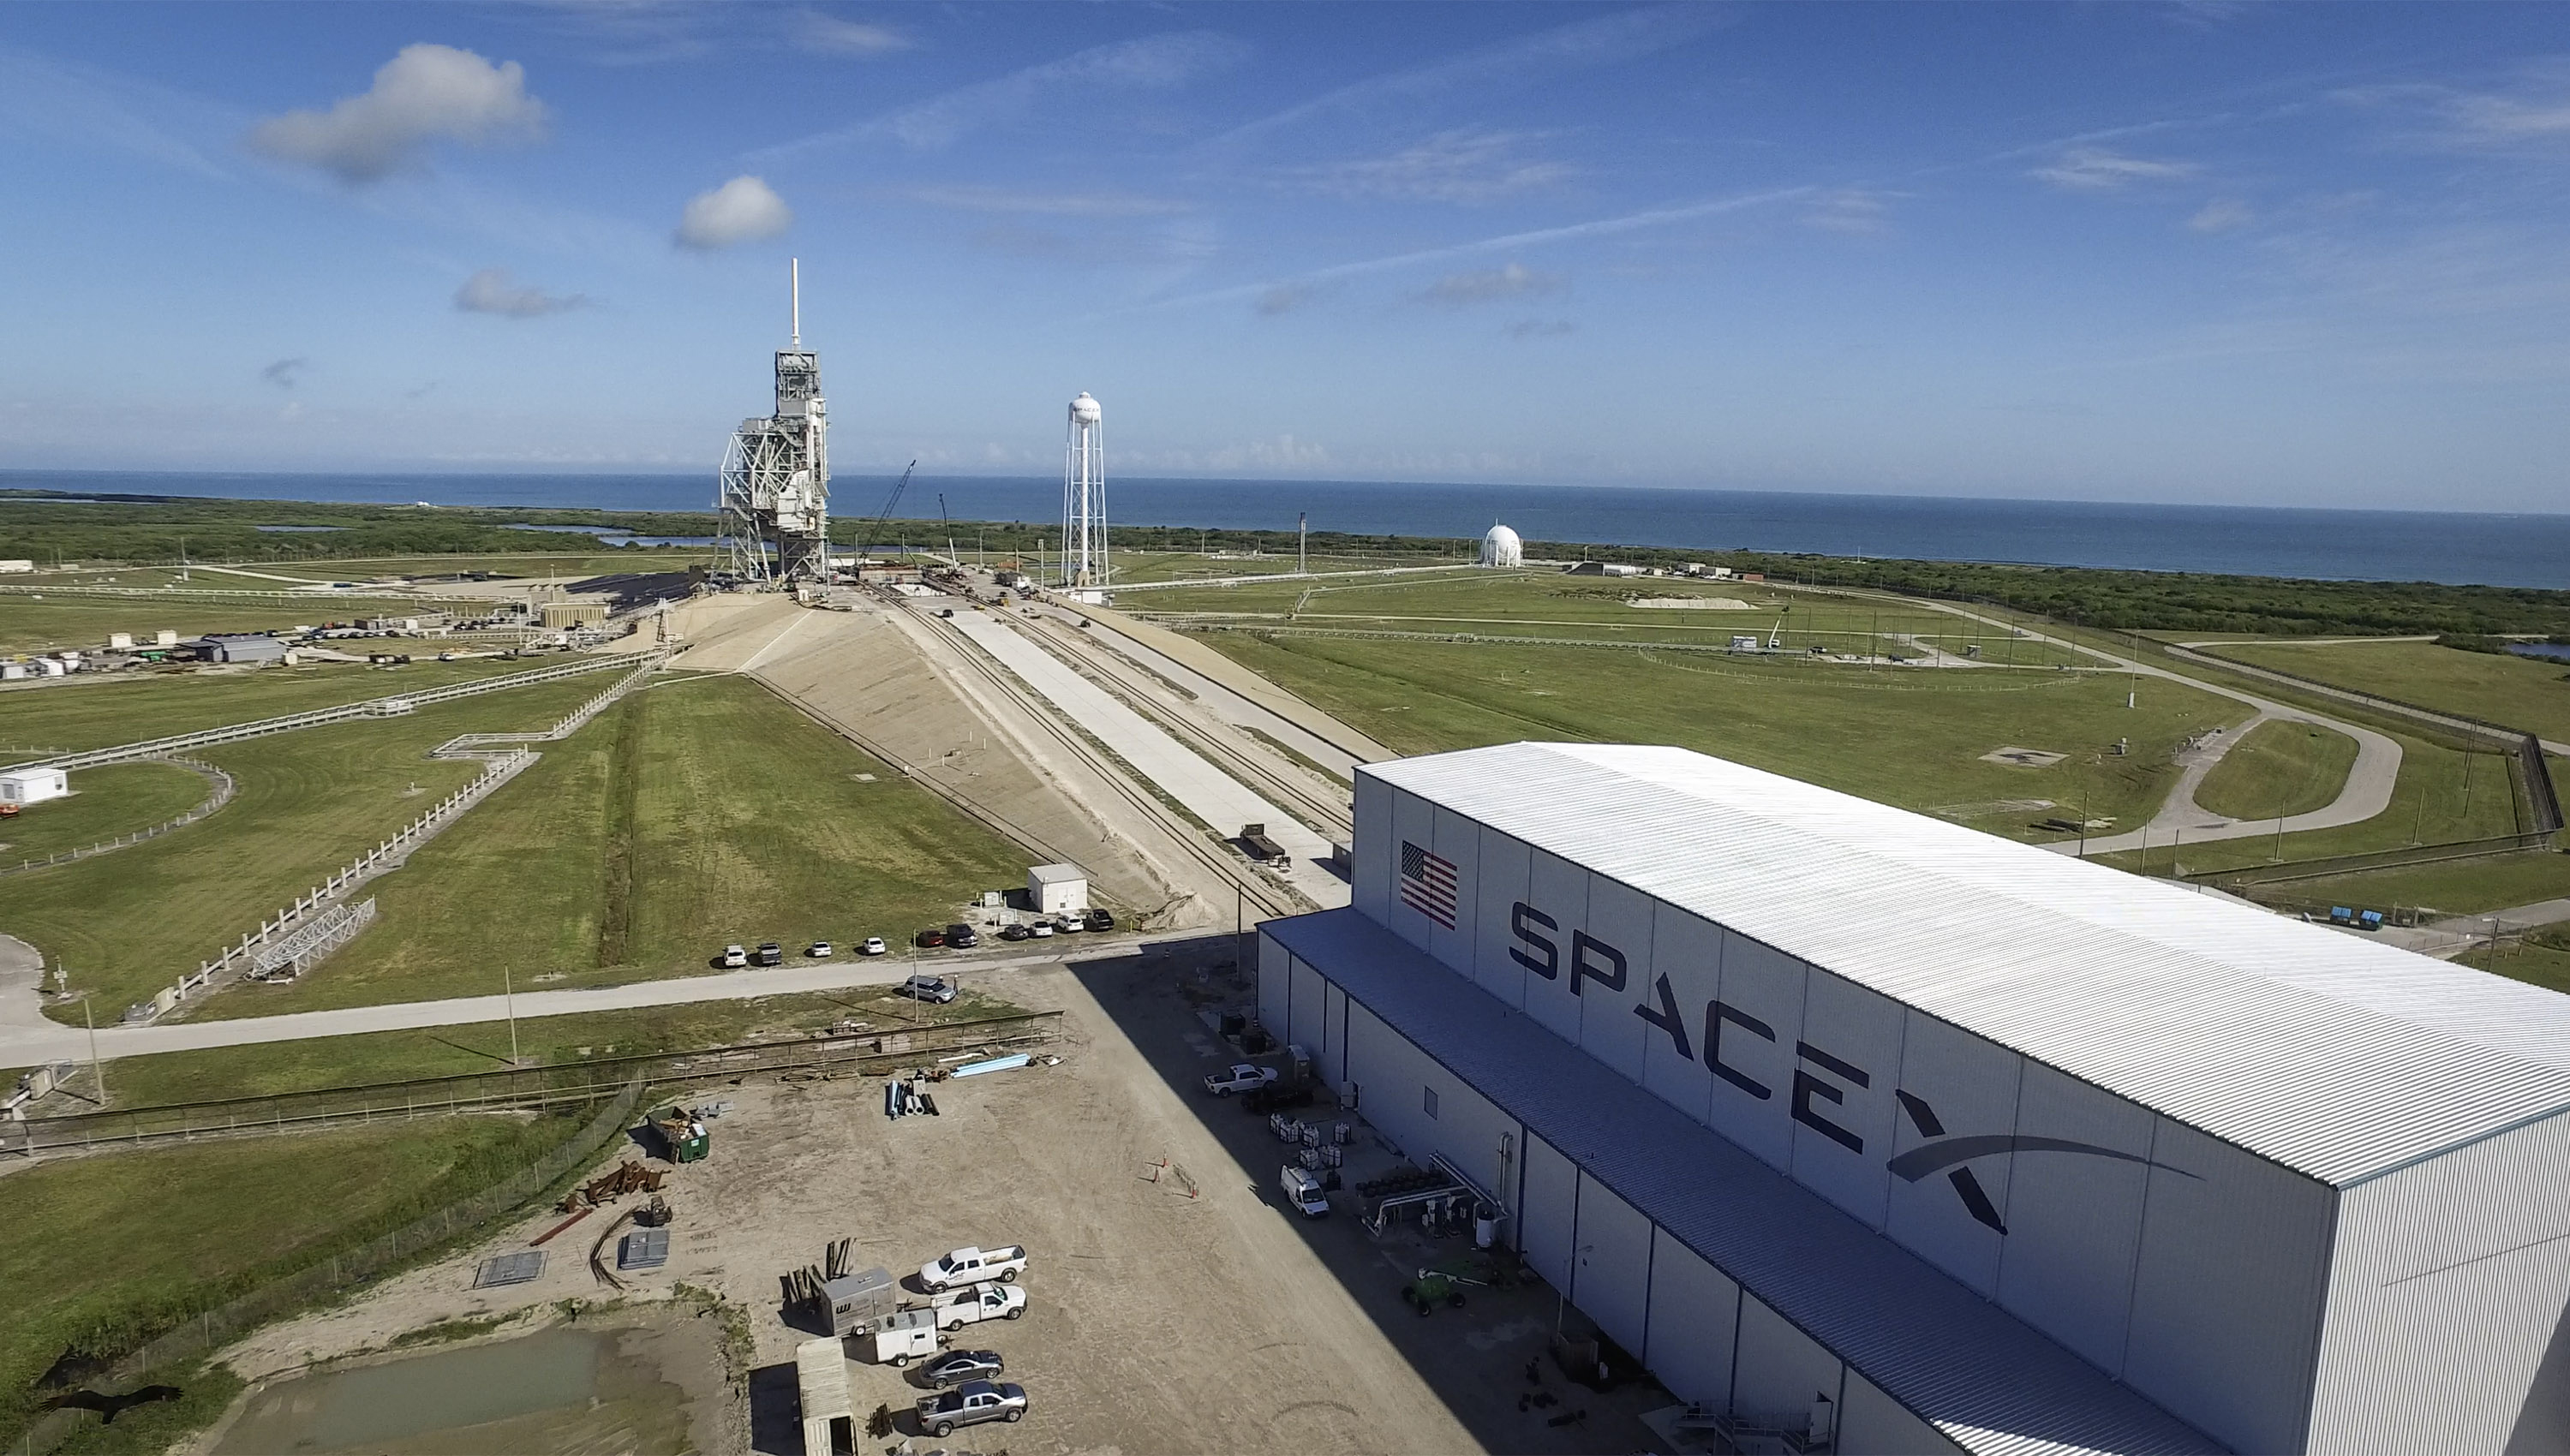 Falcon-9 (Echostar-23) - 16.03.17 [Succès] - Page 2 Spacex-kennedy-space-center-39a